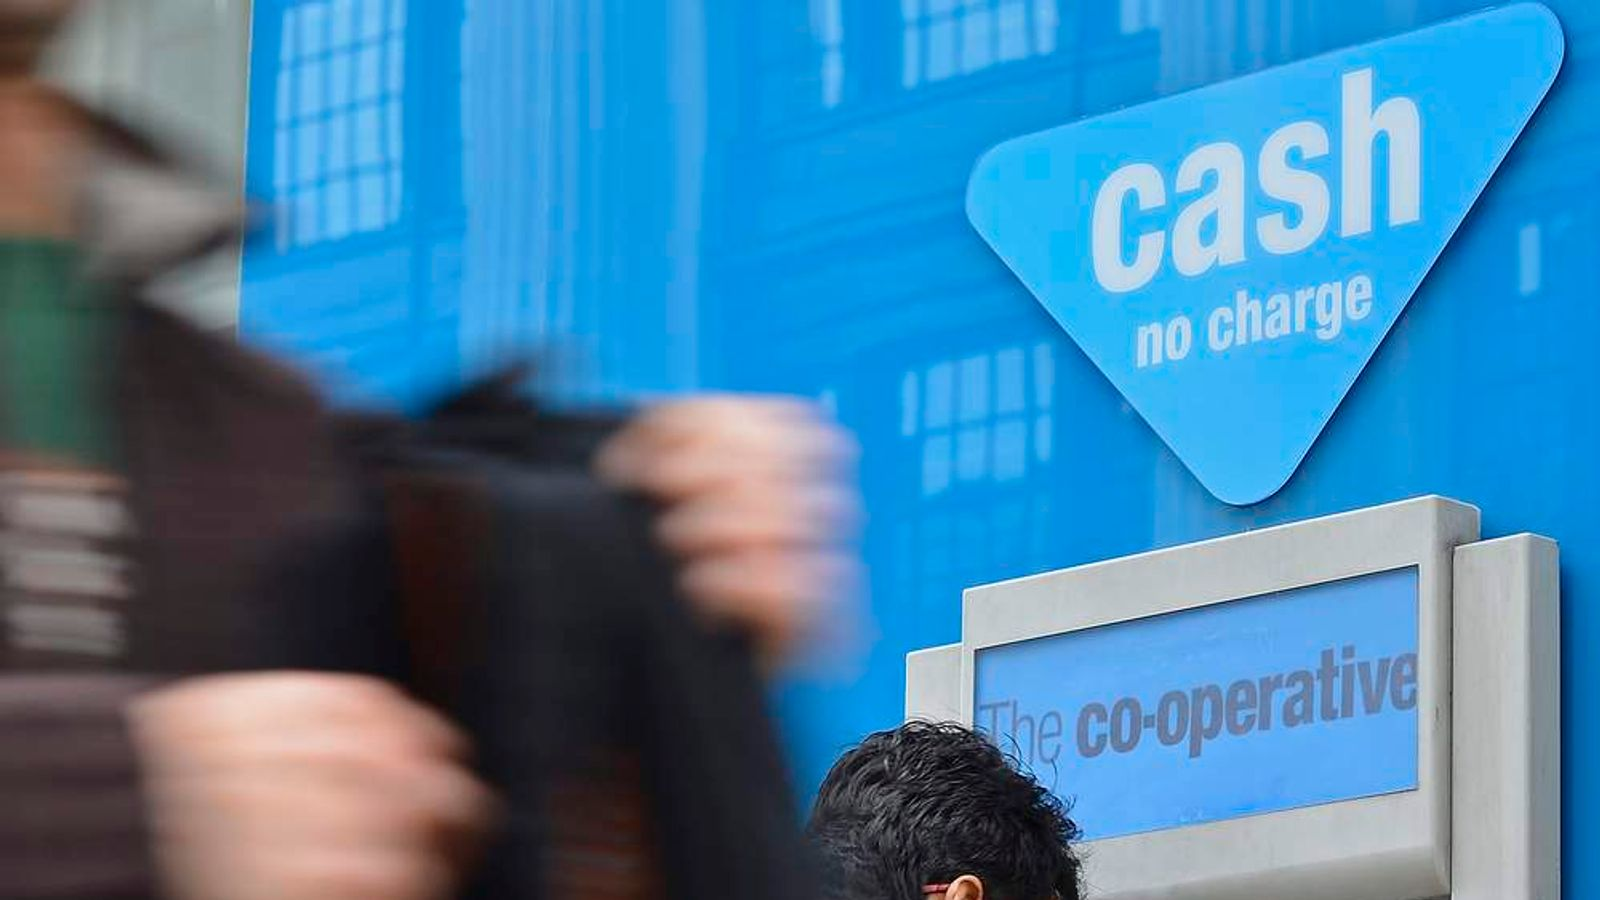 A man uses a cash point machine outside of a branch of the Co-operative Bank in central London